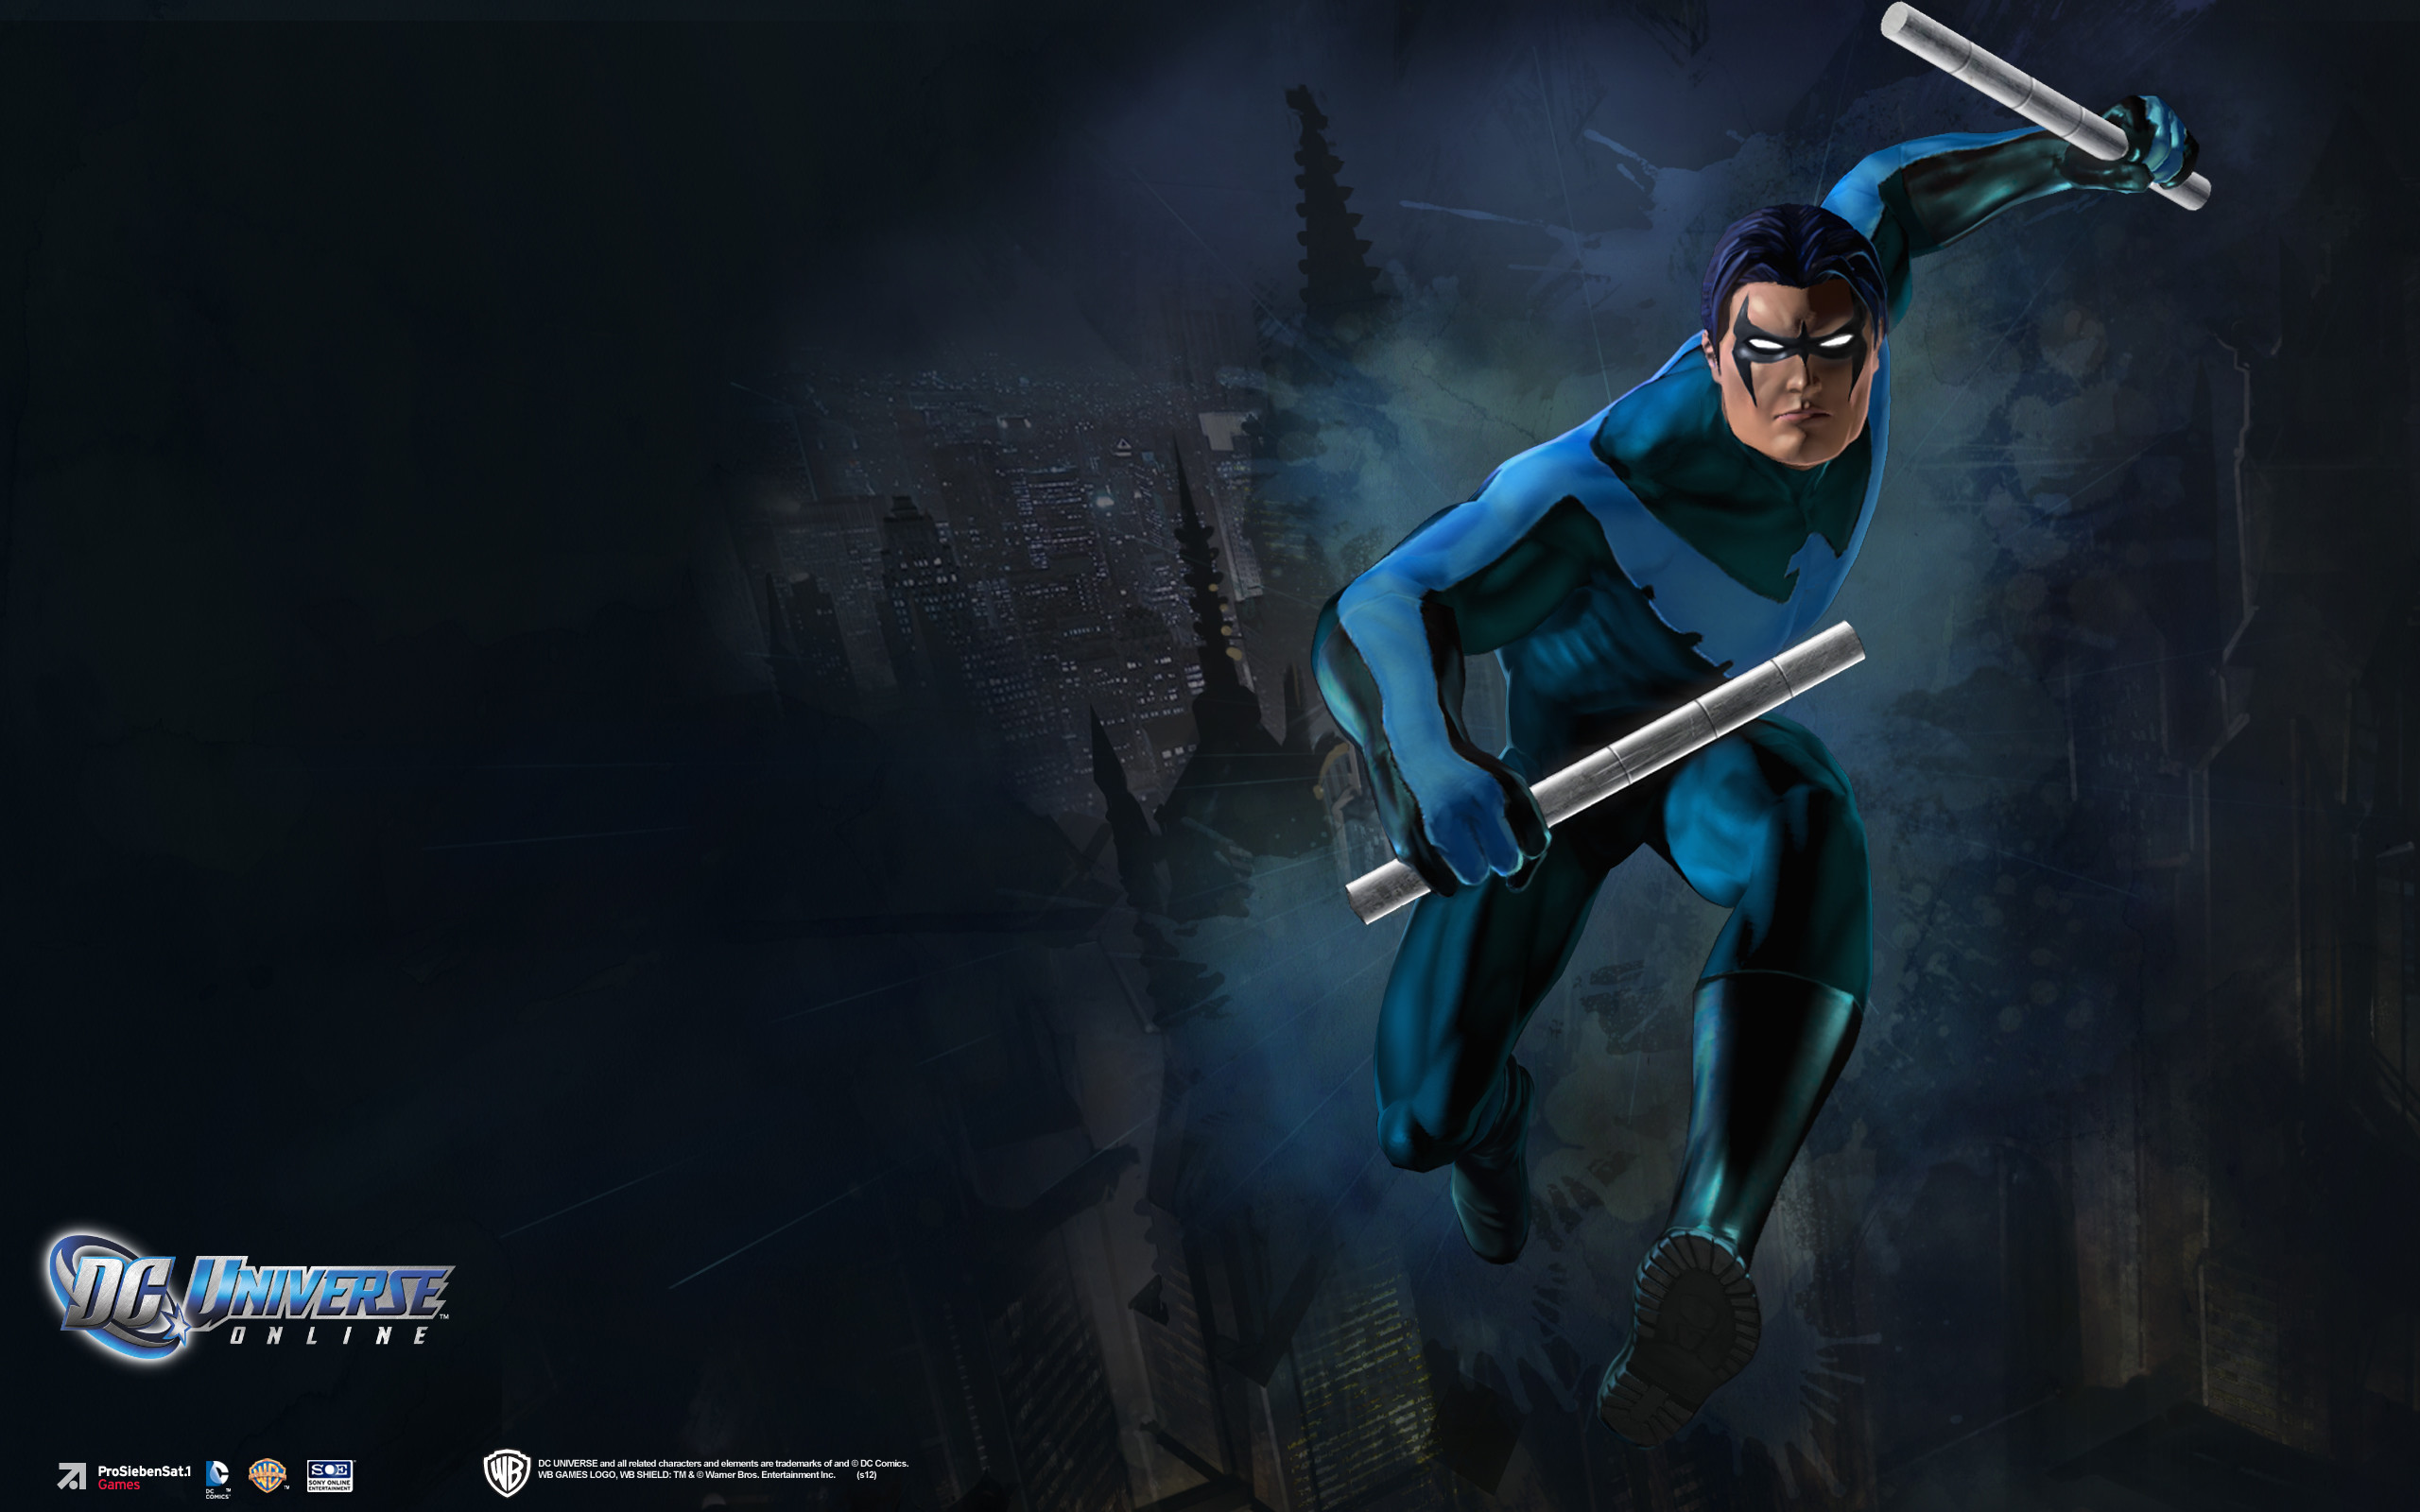 Blue Nightwing Wallpapers Full Hd